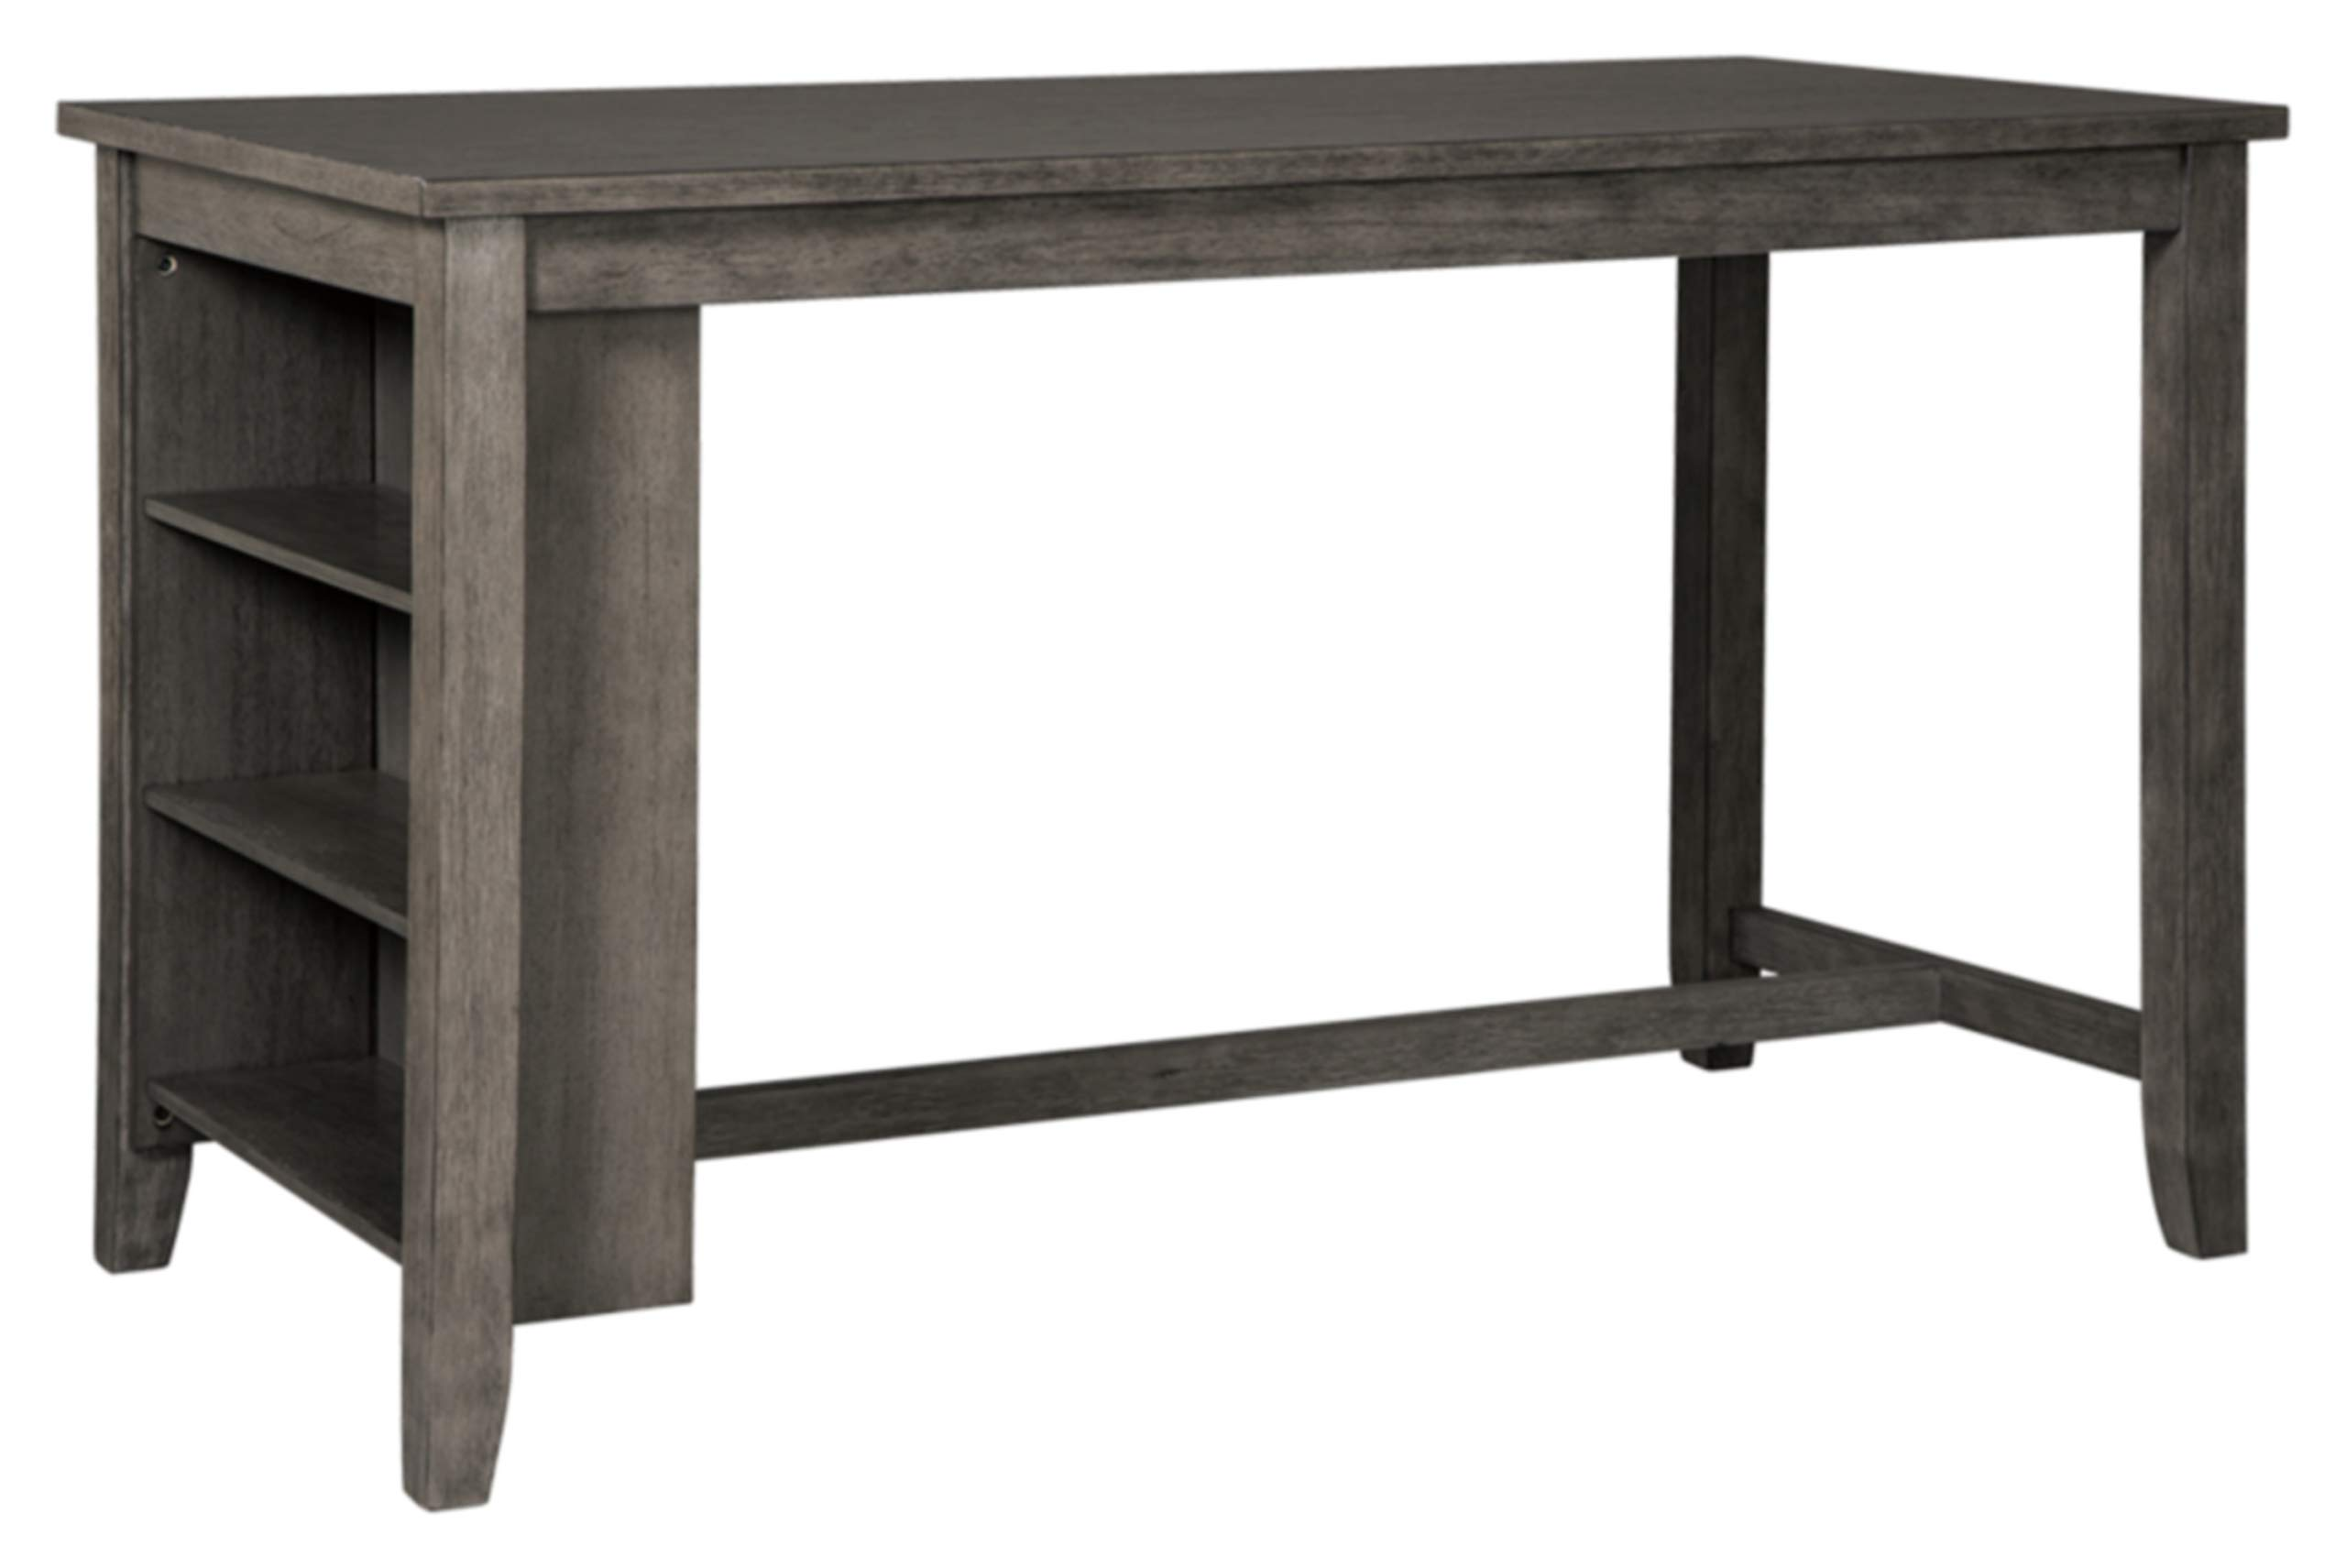 Signature Design by Ashley Caitbrook Rectangular Dining Room Counter Table, Dark Gray by Signature Design by Ashley